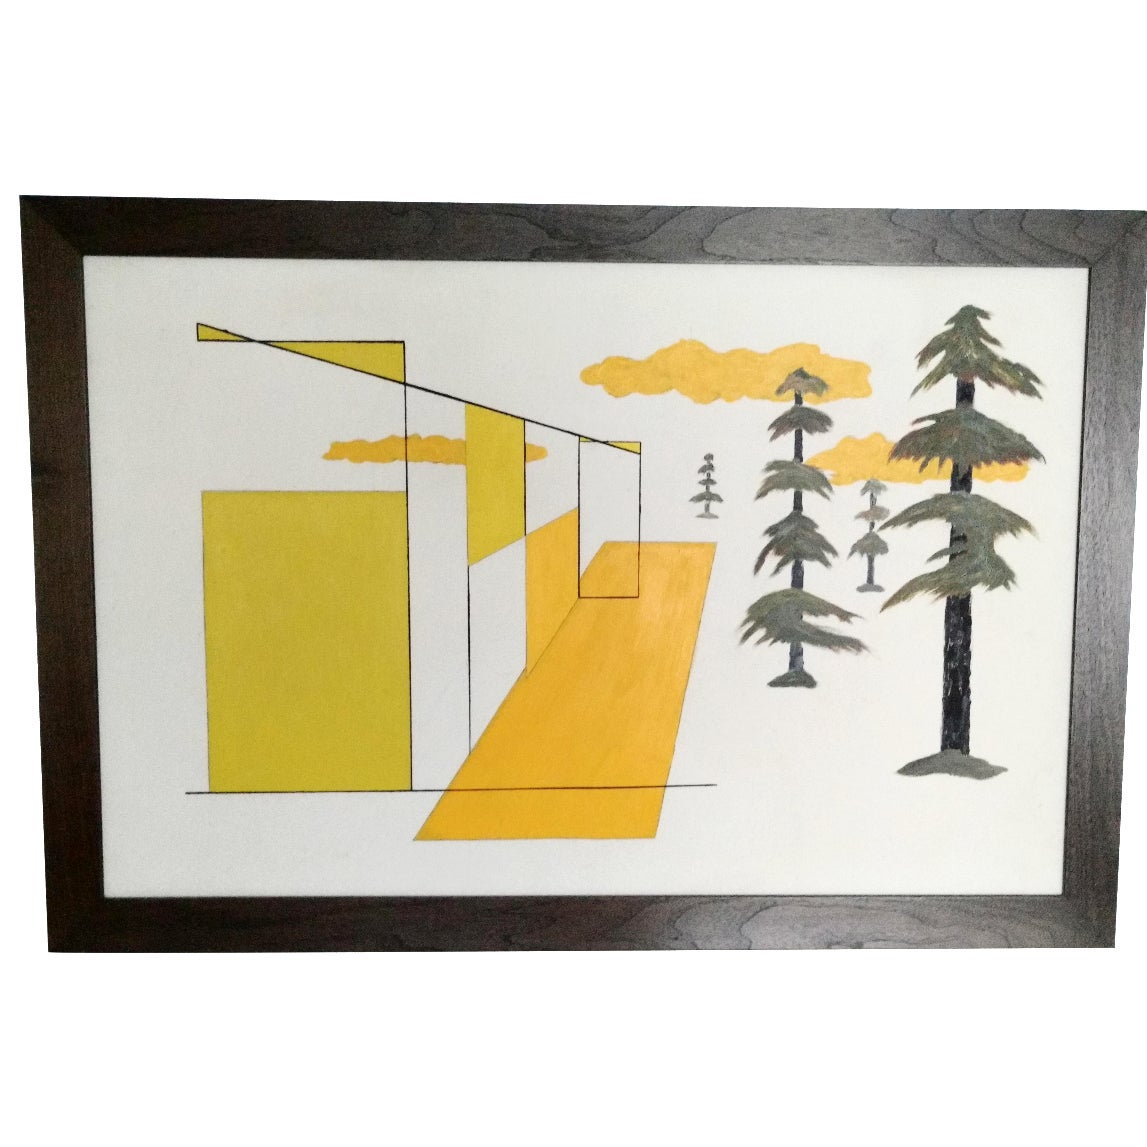 Abstract Cubist Landscape with Pine Trees | Chairish